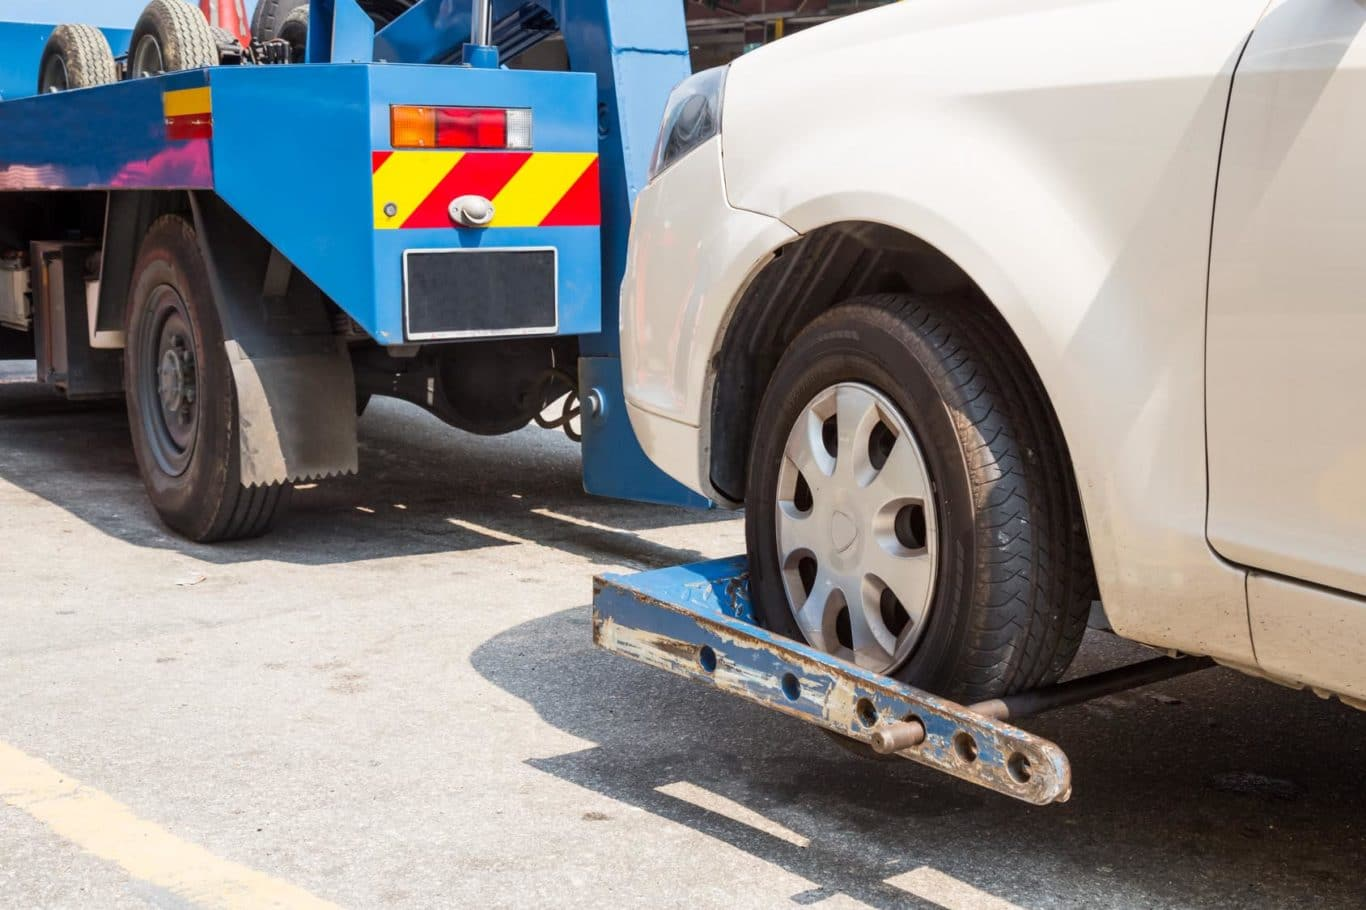 Newcastle expert Roadside Assistance services